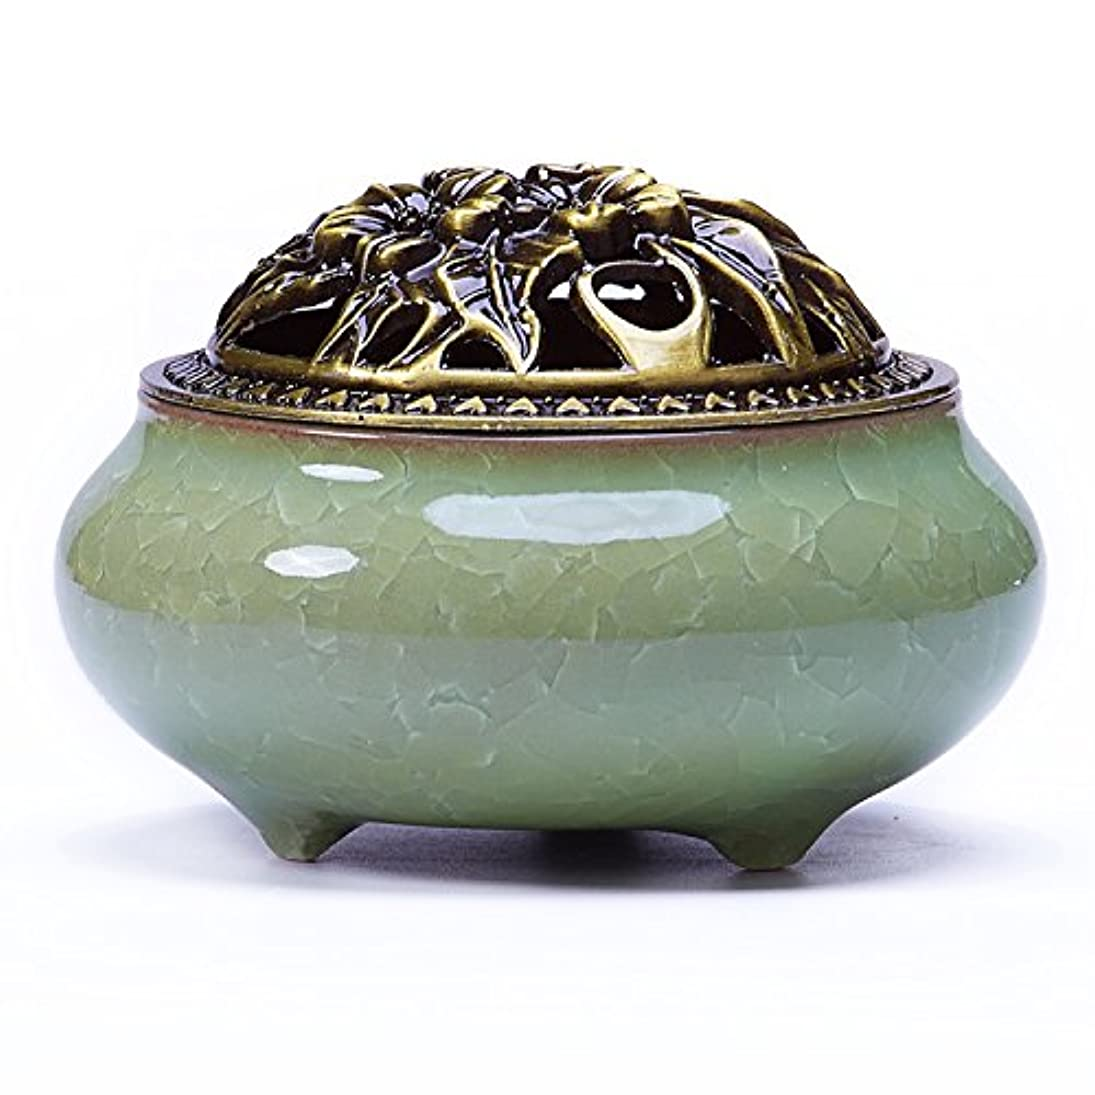 ピンクひらめき噂UoonハンドメイドCone Incense Burner with真鍮Calabashホルダーfor Stick Incense and Coin Incense UOON-BL001